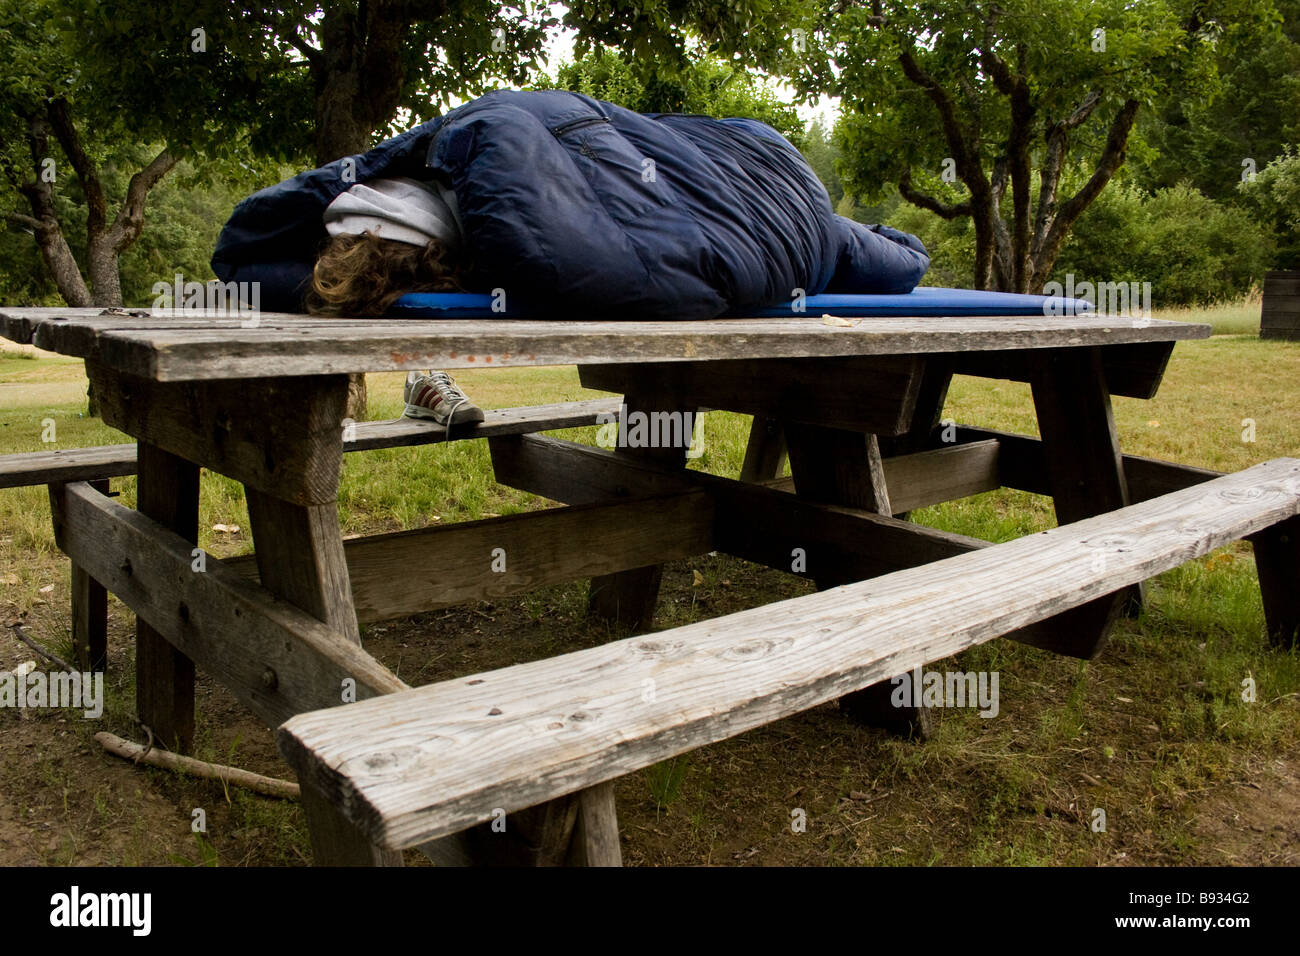 Person Sleeping In A Sleeping Bag On A Picnic Table.